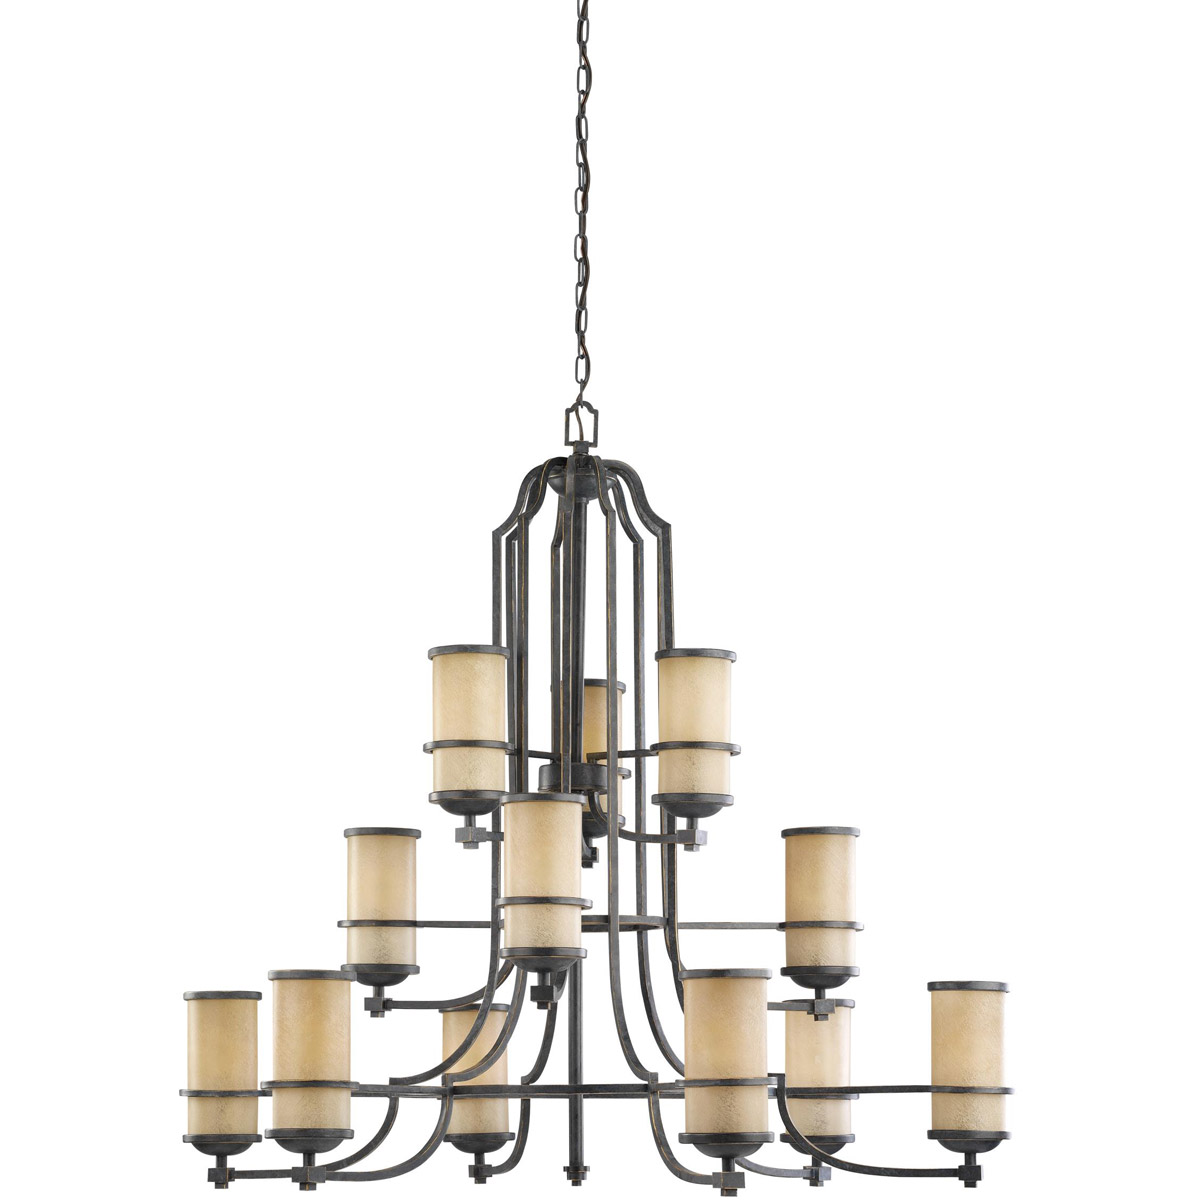 Sea Gull Roslyn 12 Light Chandelier Multi-Tier in Flemish Bronze 31523BLE-845